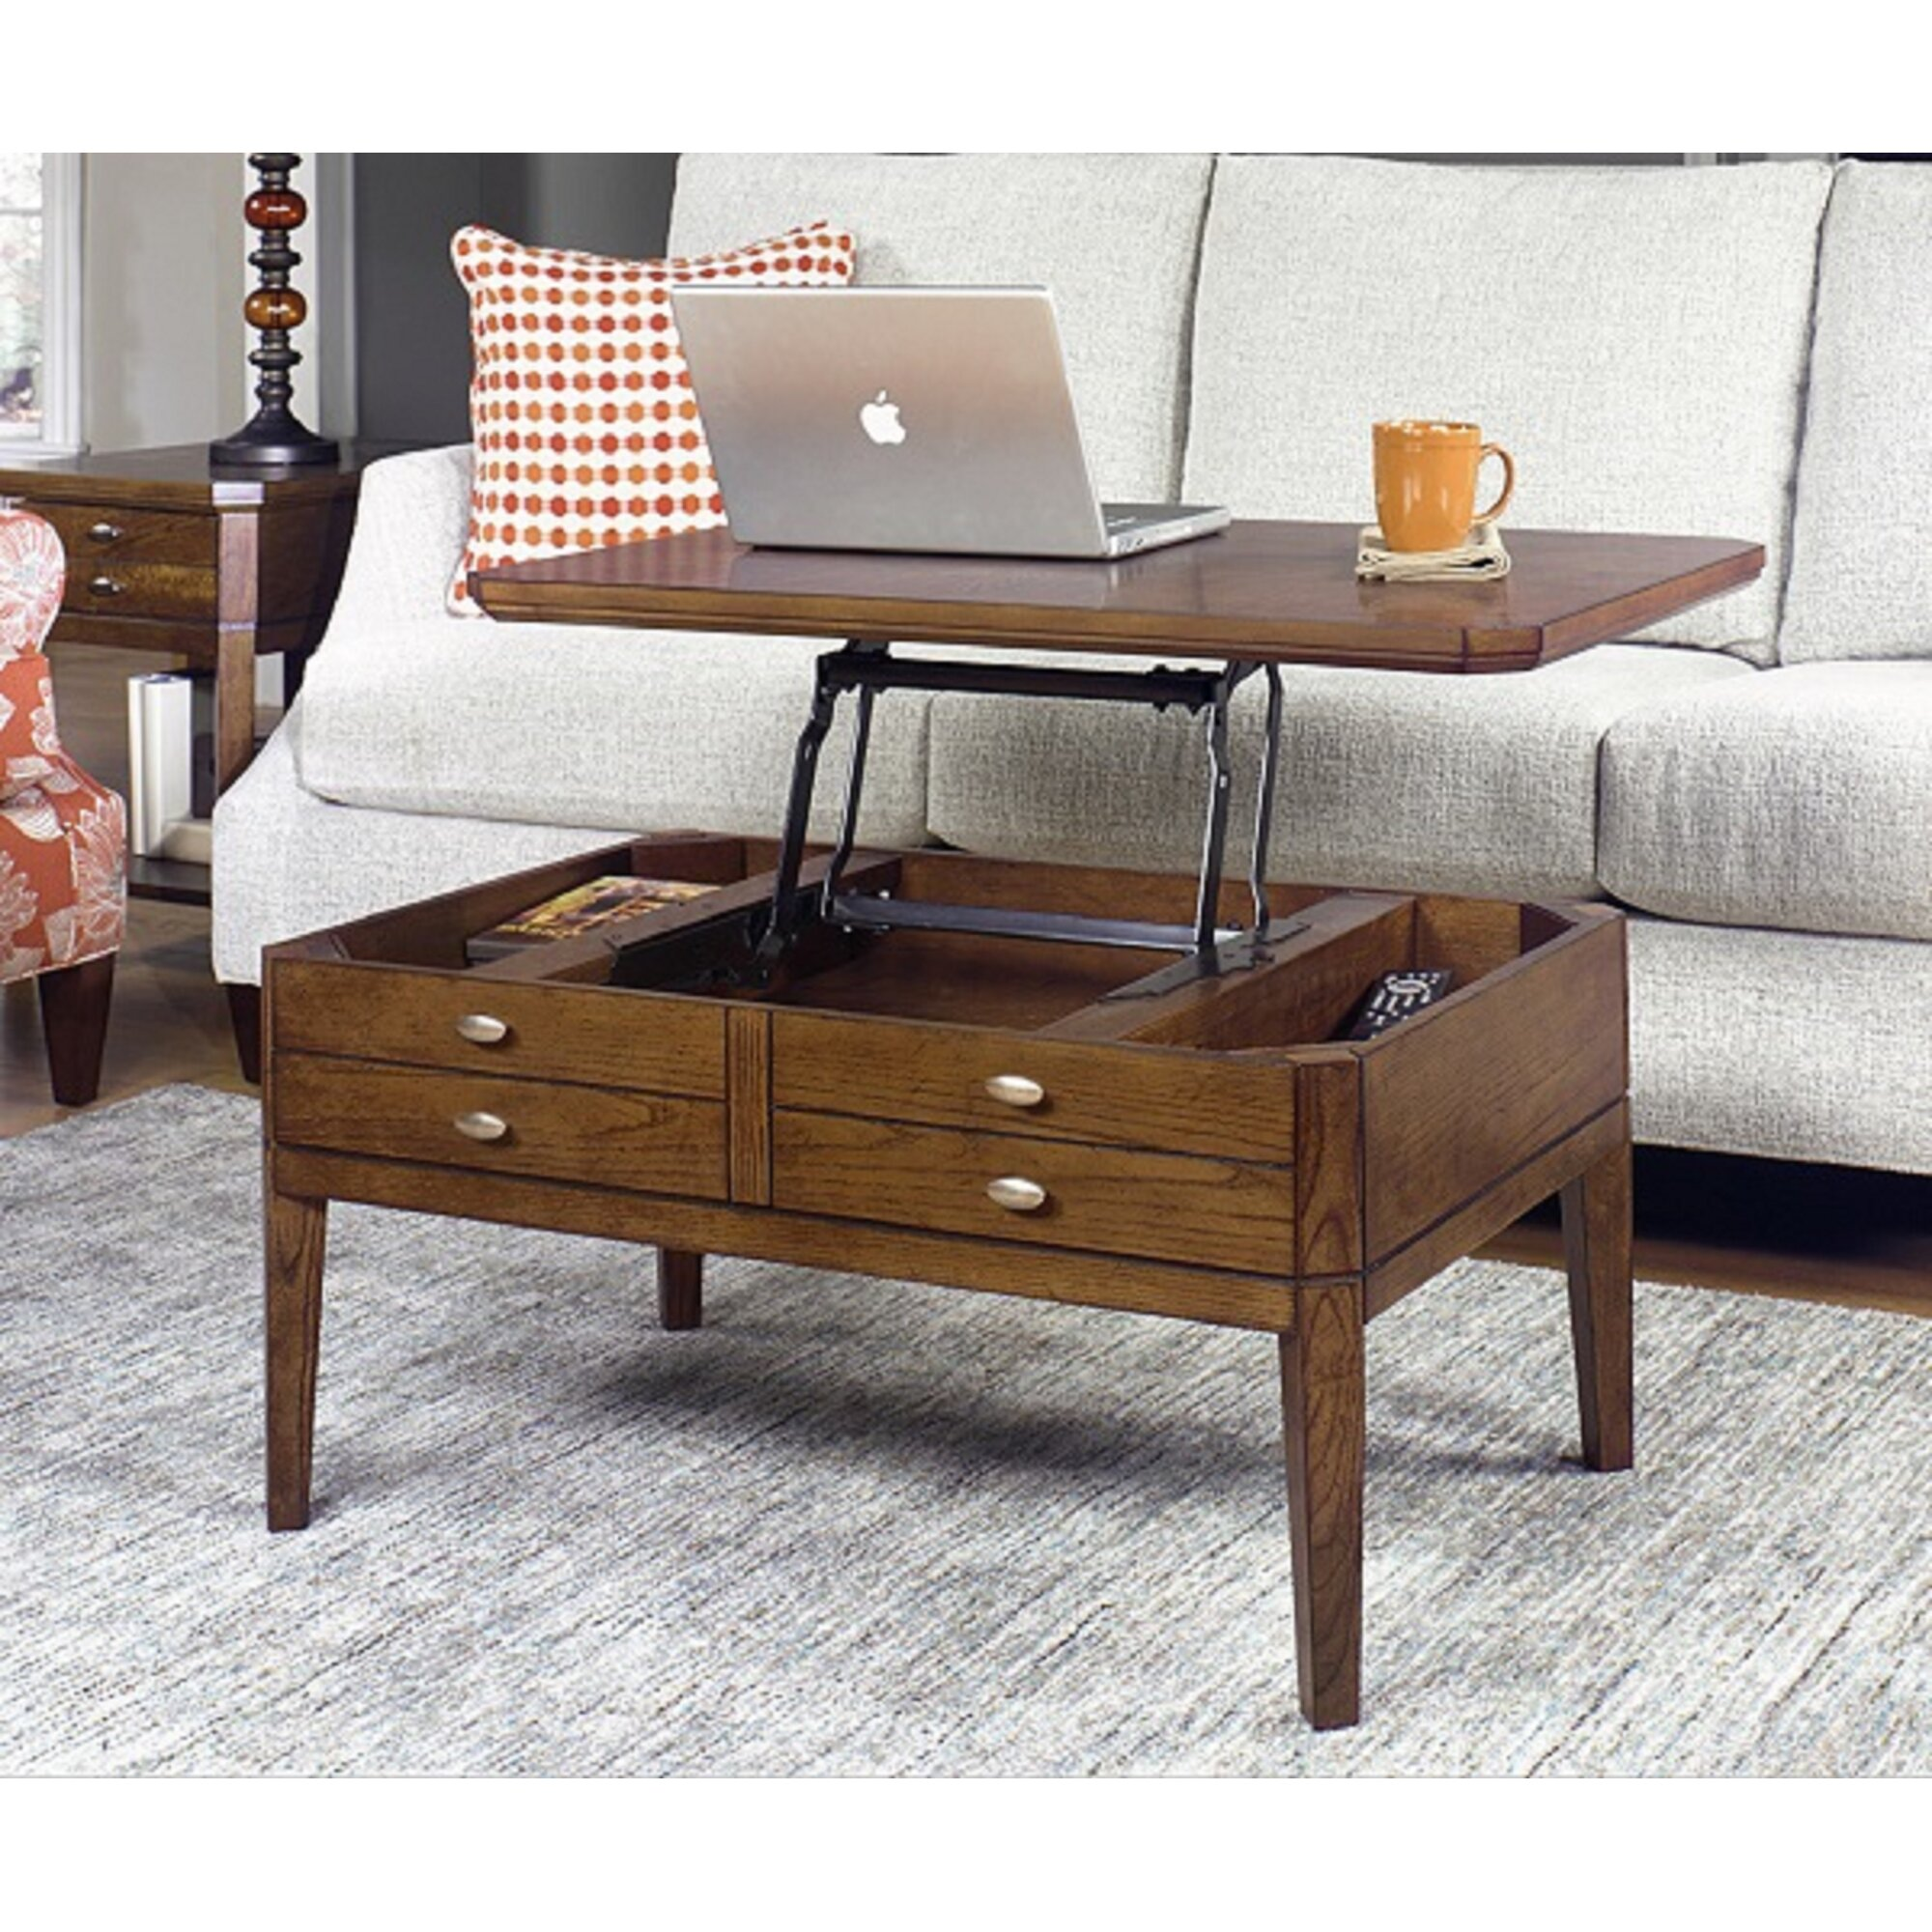 Lift Top Coffee Table Hardware Canada: Alcott Hill Weybossett Coffee Table With Lift Top